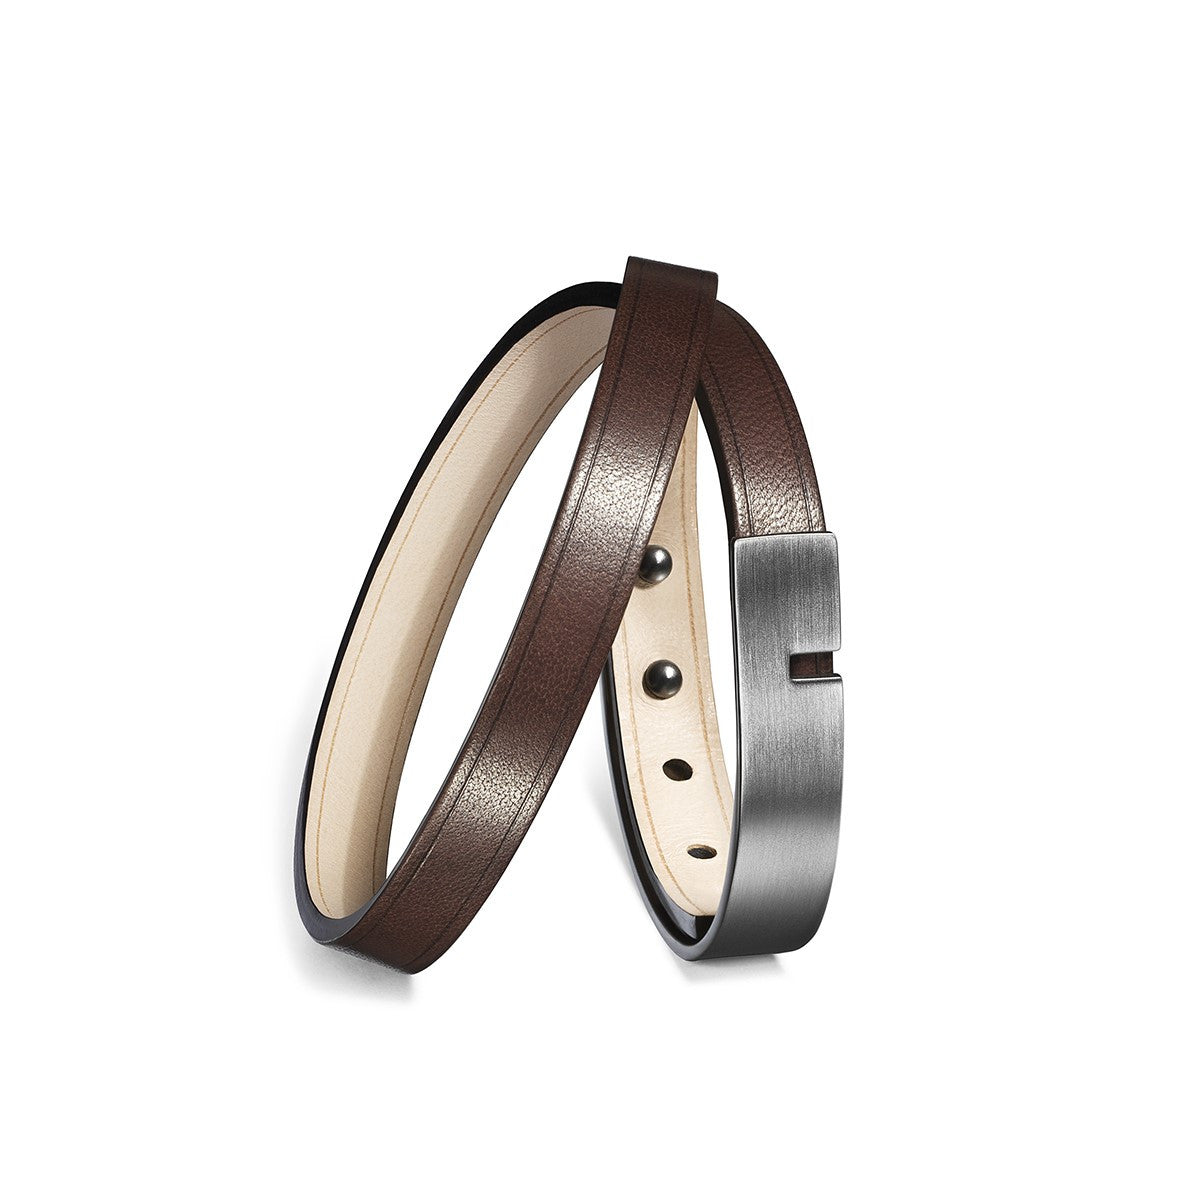 U-Turn Twice - Chocolate Leather Bracelet and Steel Gun clasp